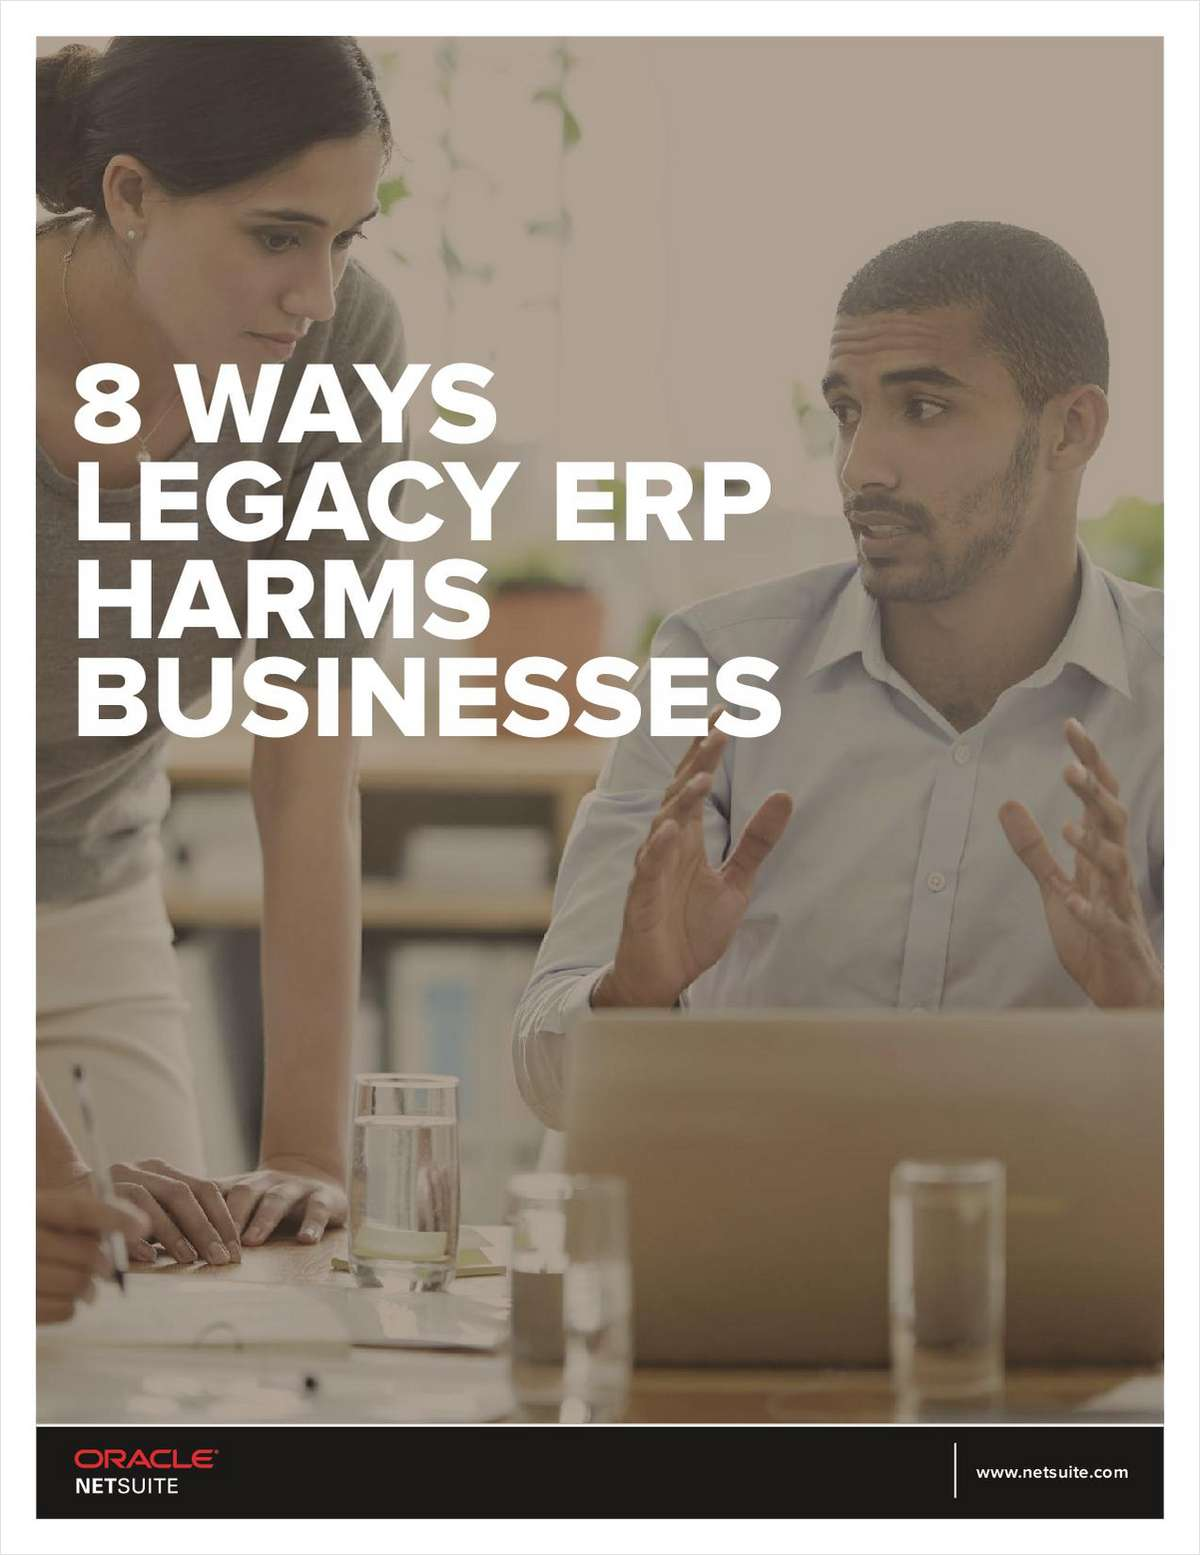 8 Ways Legacy ERP Harms Business